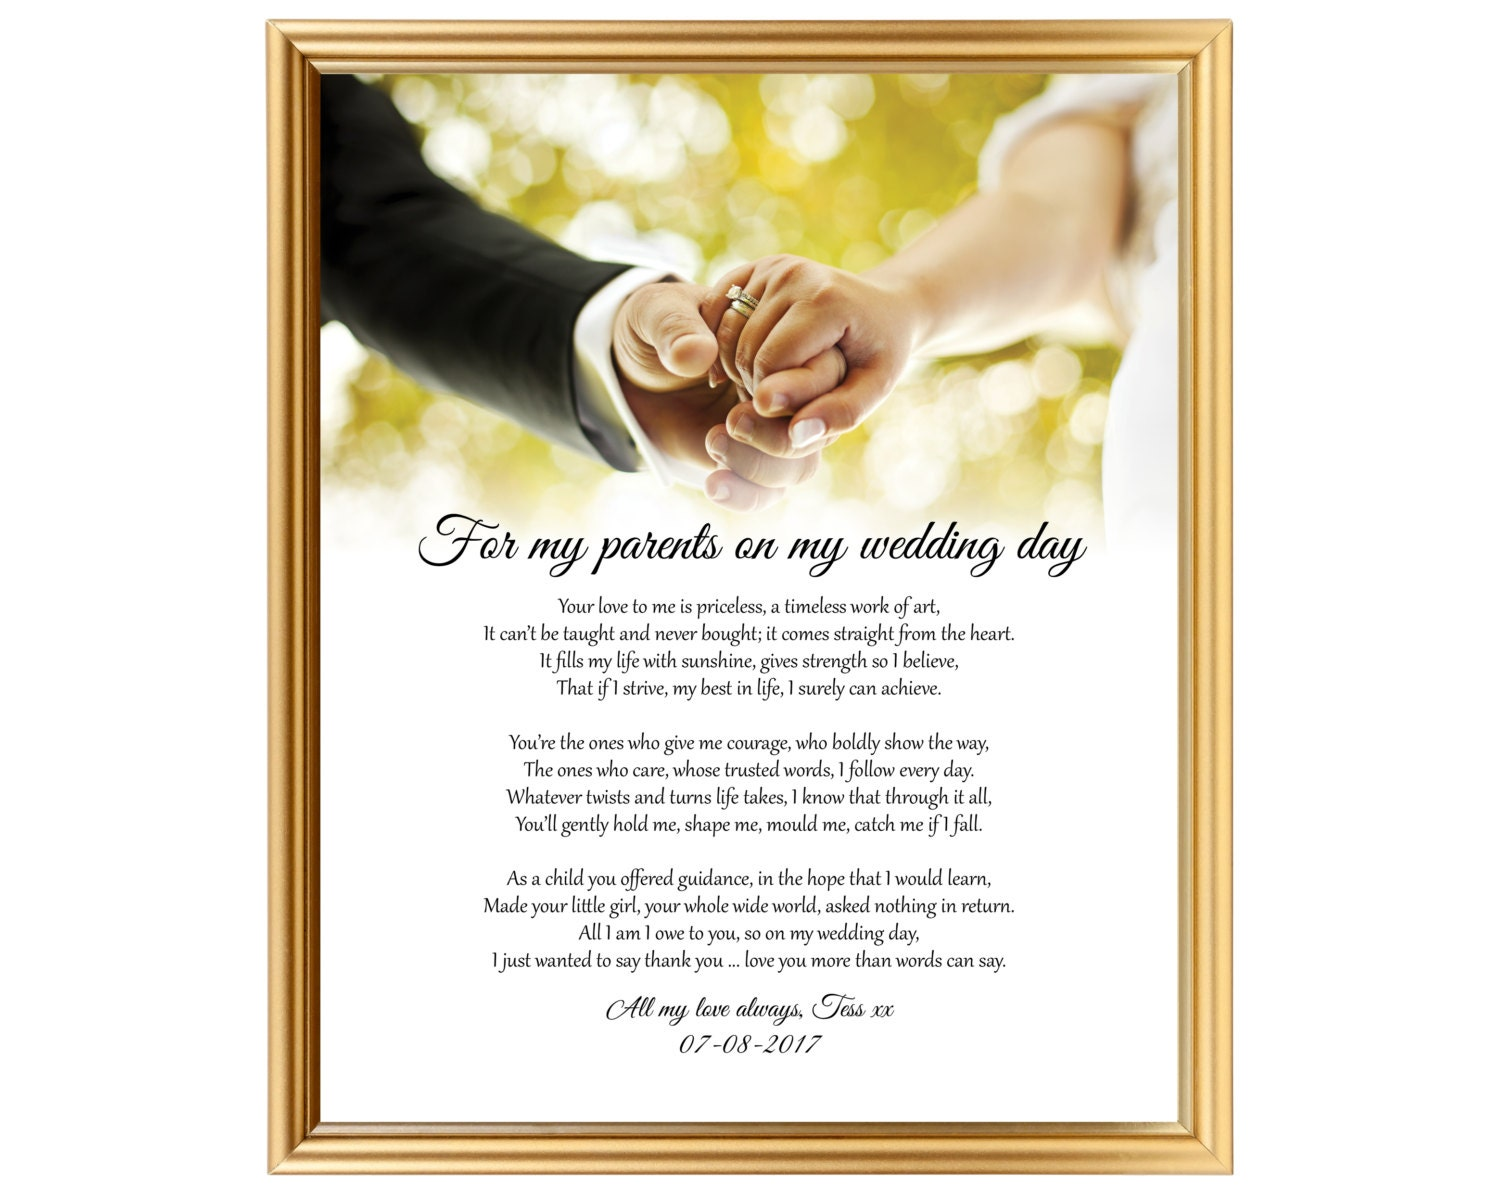 Gift Poem On Wedding Day From Bride To Parents Poem Gift